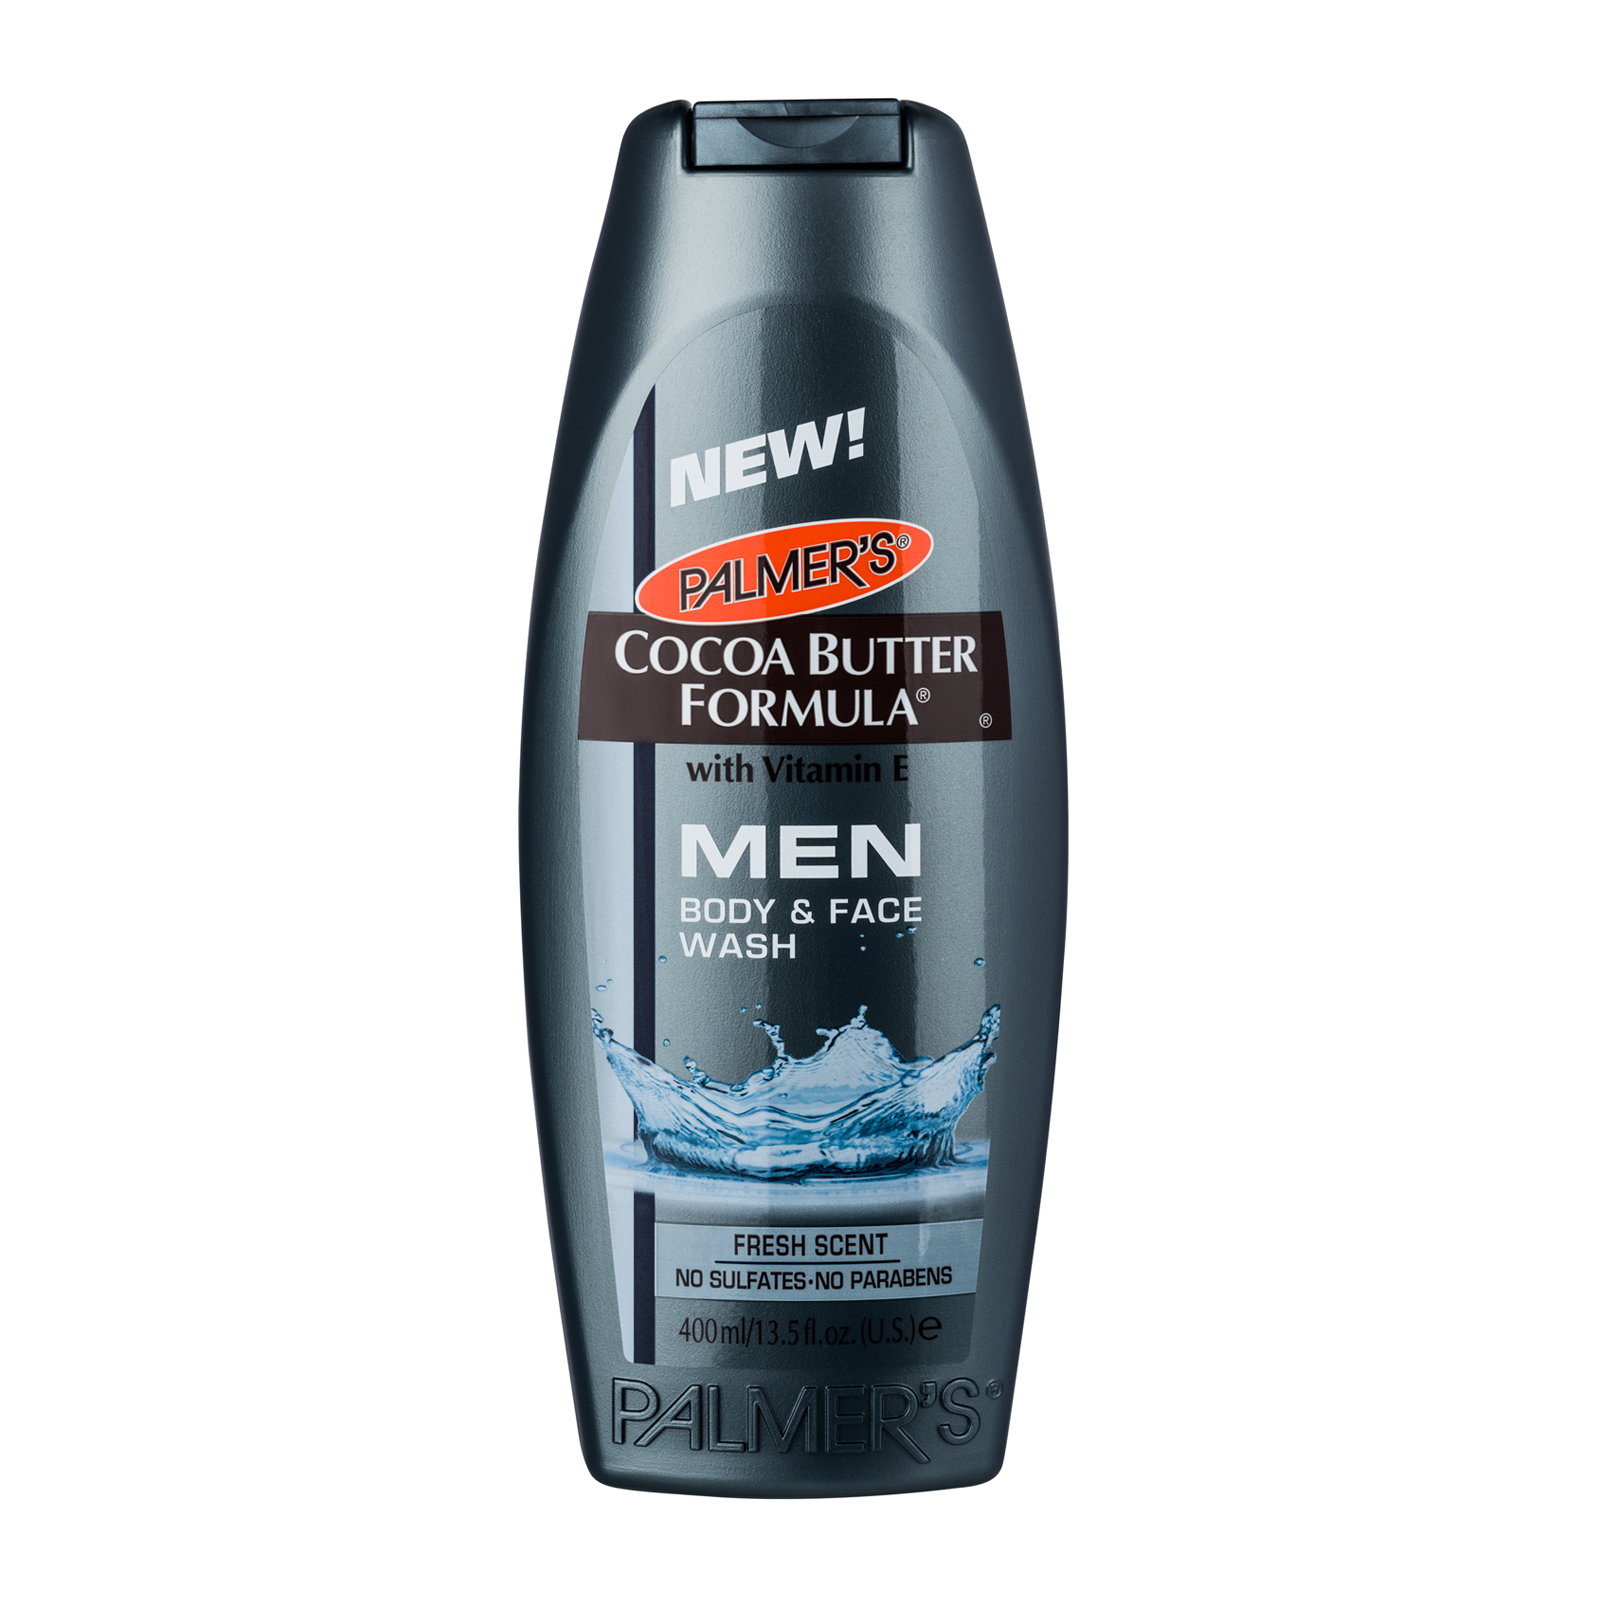 http://cdn1.feelunique.com/img/products/45422/Palmer__039_s_Cocoa_Butter_Formula_MEN_Body__amp__Face_Wash_400ml_1384357164.png